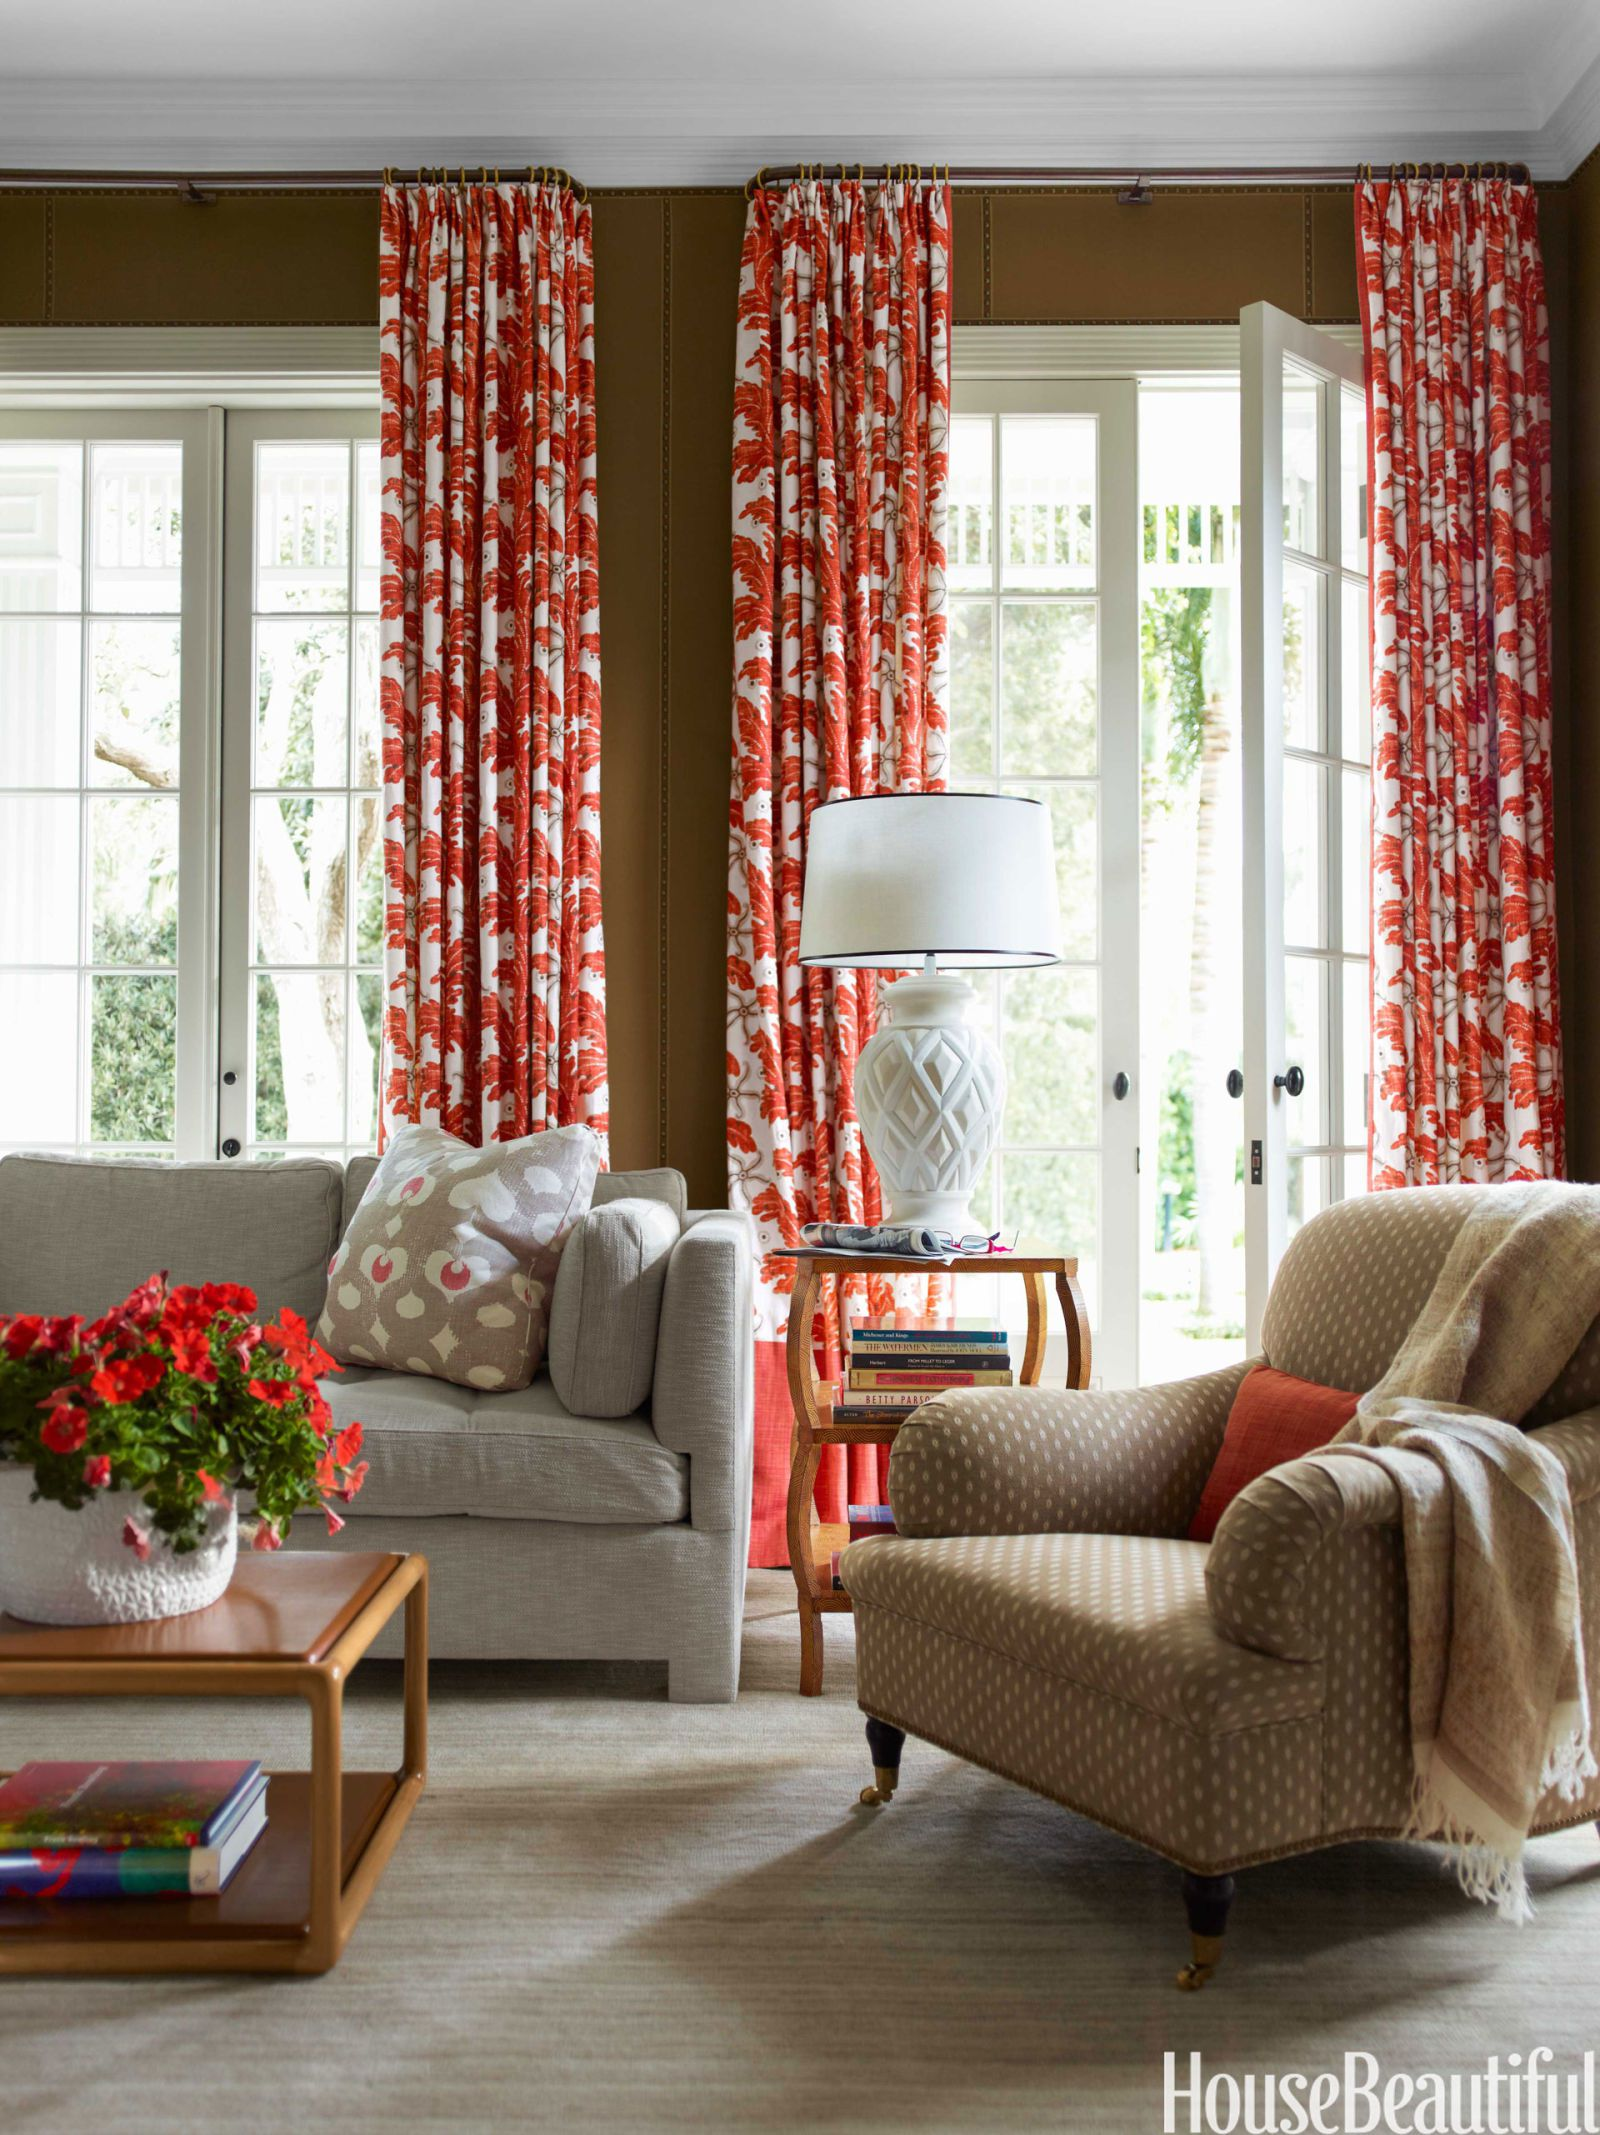 34 best window treatment ideas - modern curtains, blinds u0026 coverings HGNCKJV